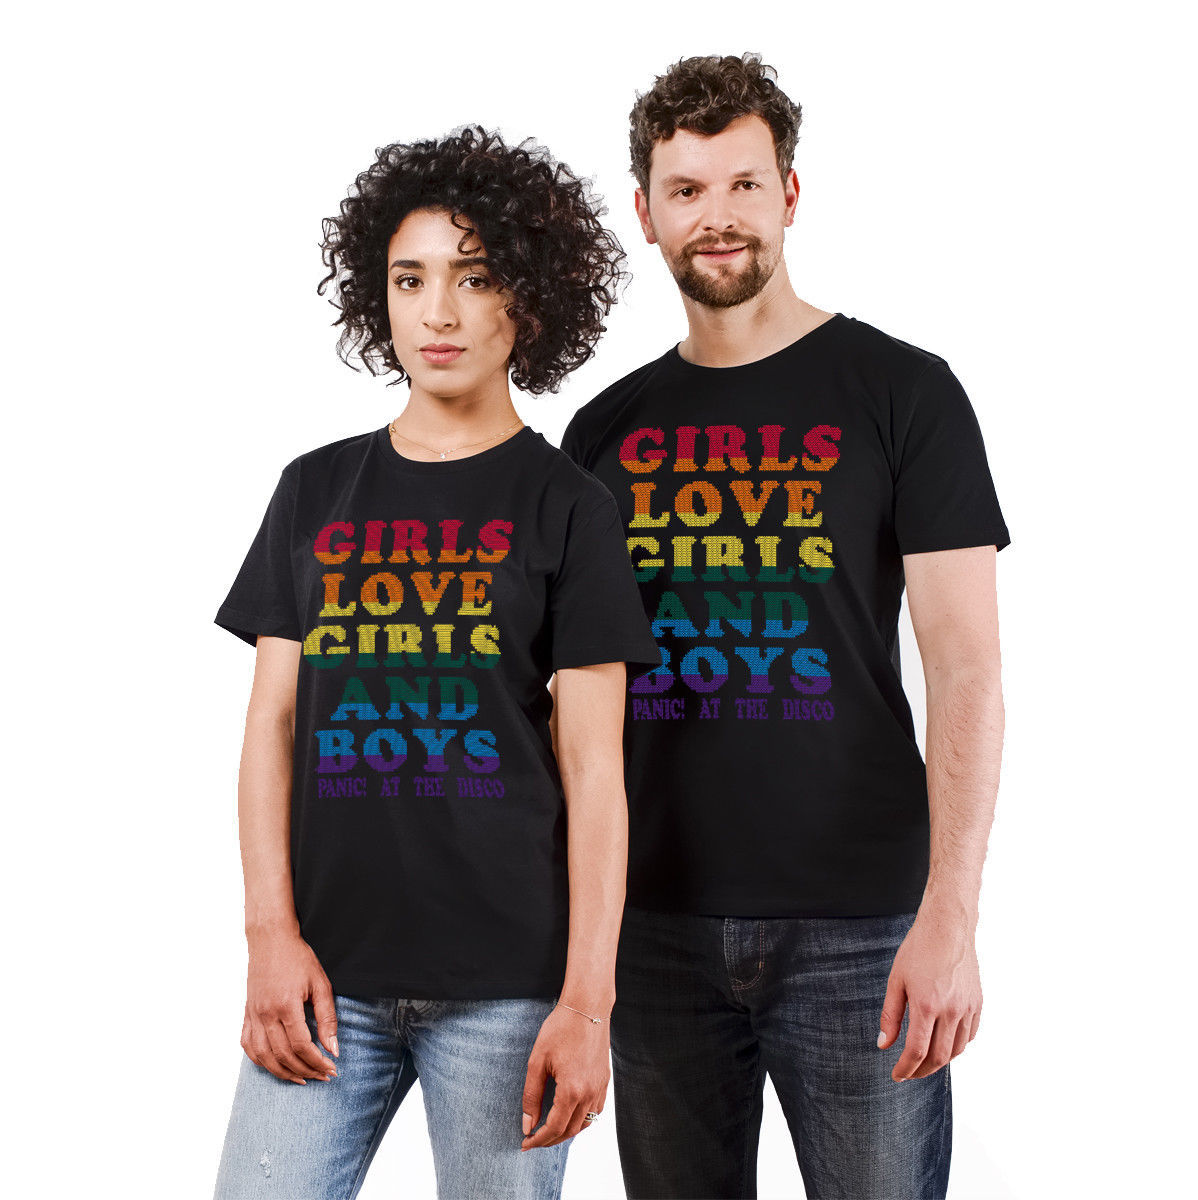 e6f6fd9a2 Girl Love Girls and Boys Pride LGBT and 50 similar items. 57